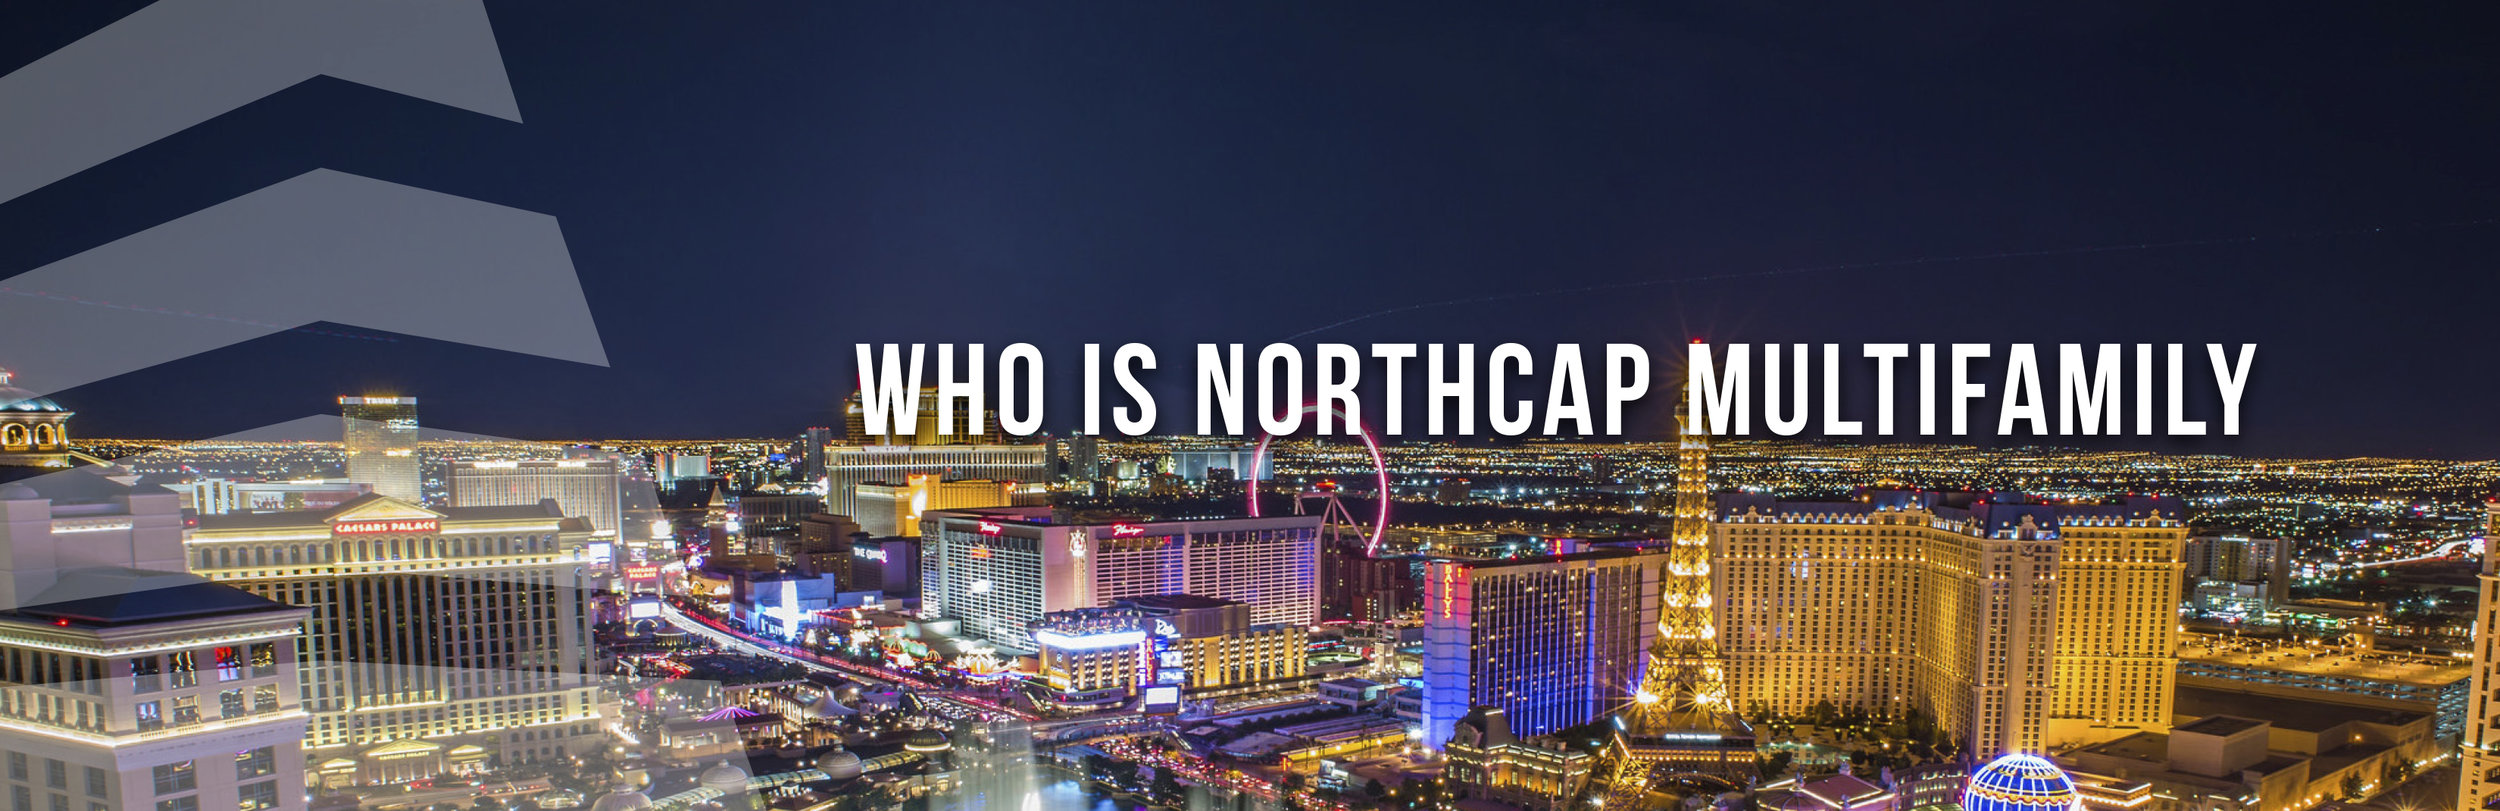 Who is Northcap_pic.jpg